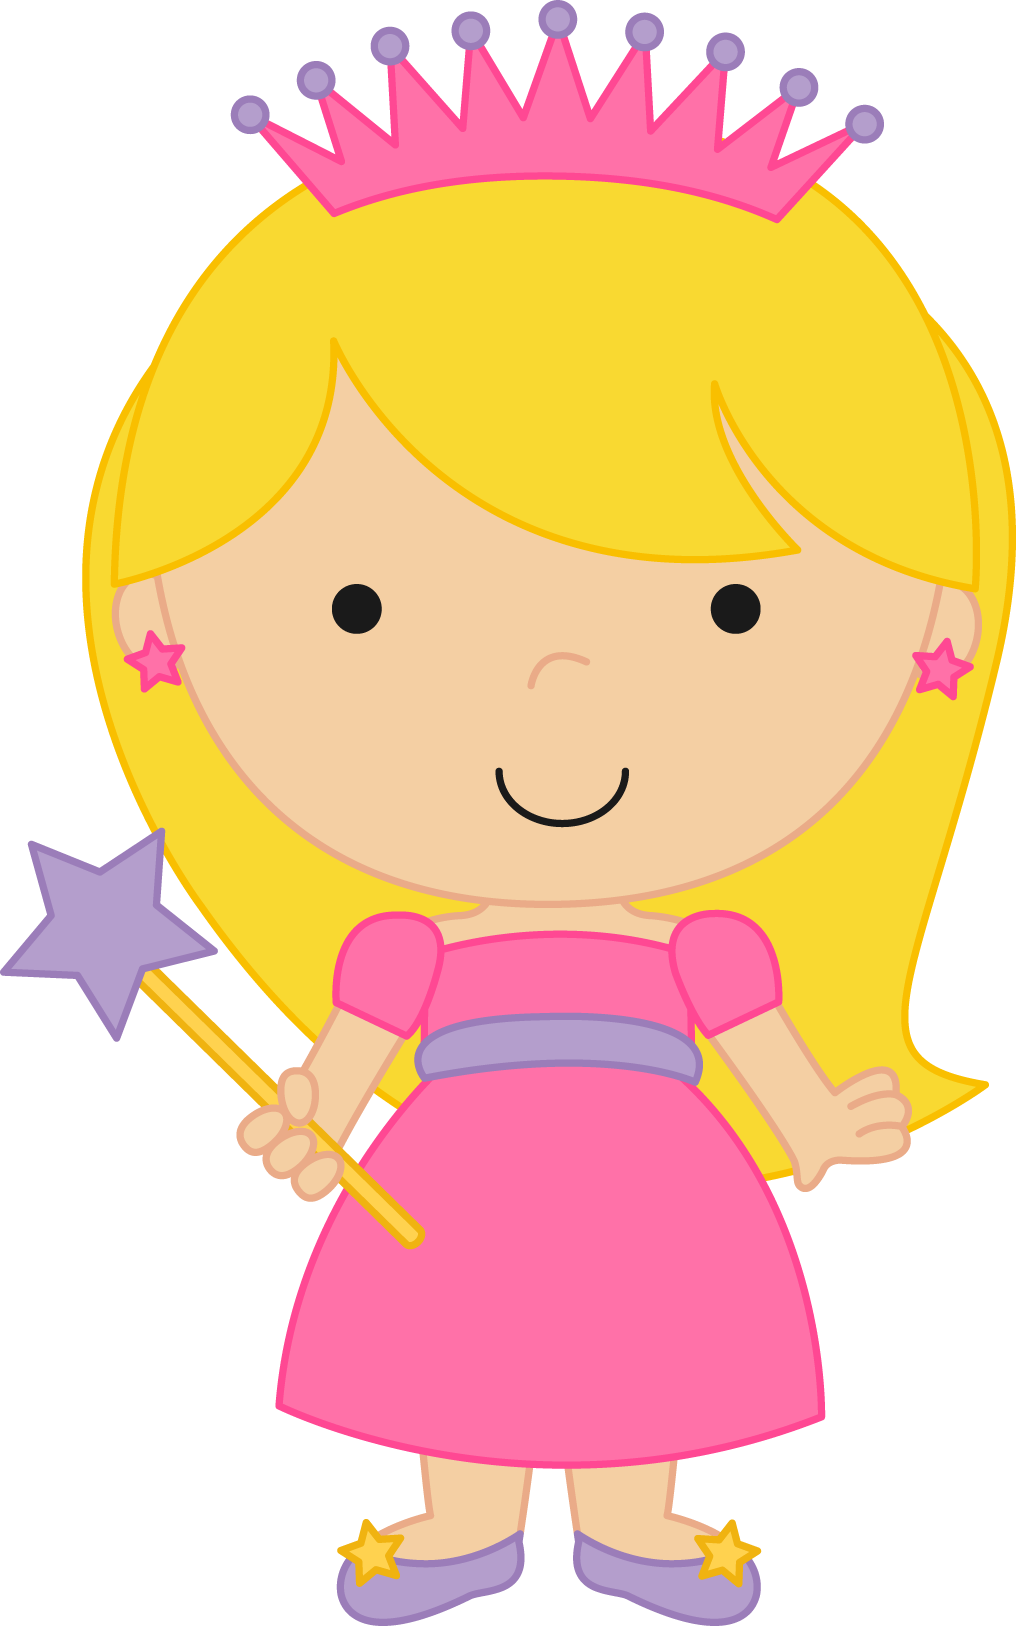 clipart transparent library Princesas e Pr